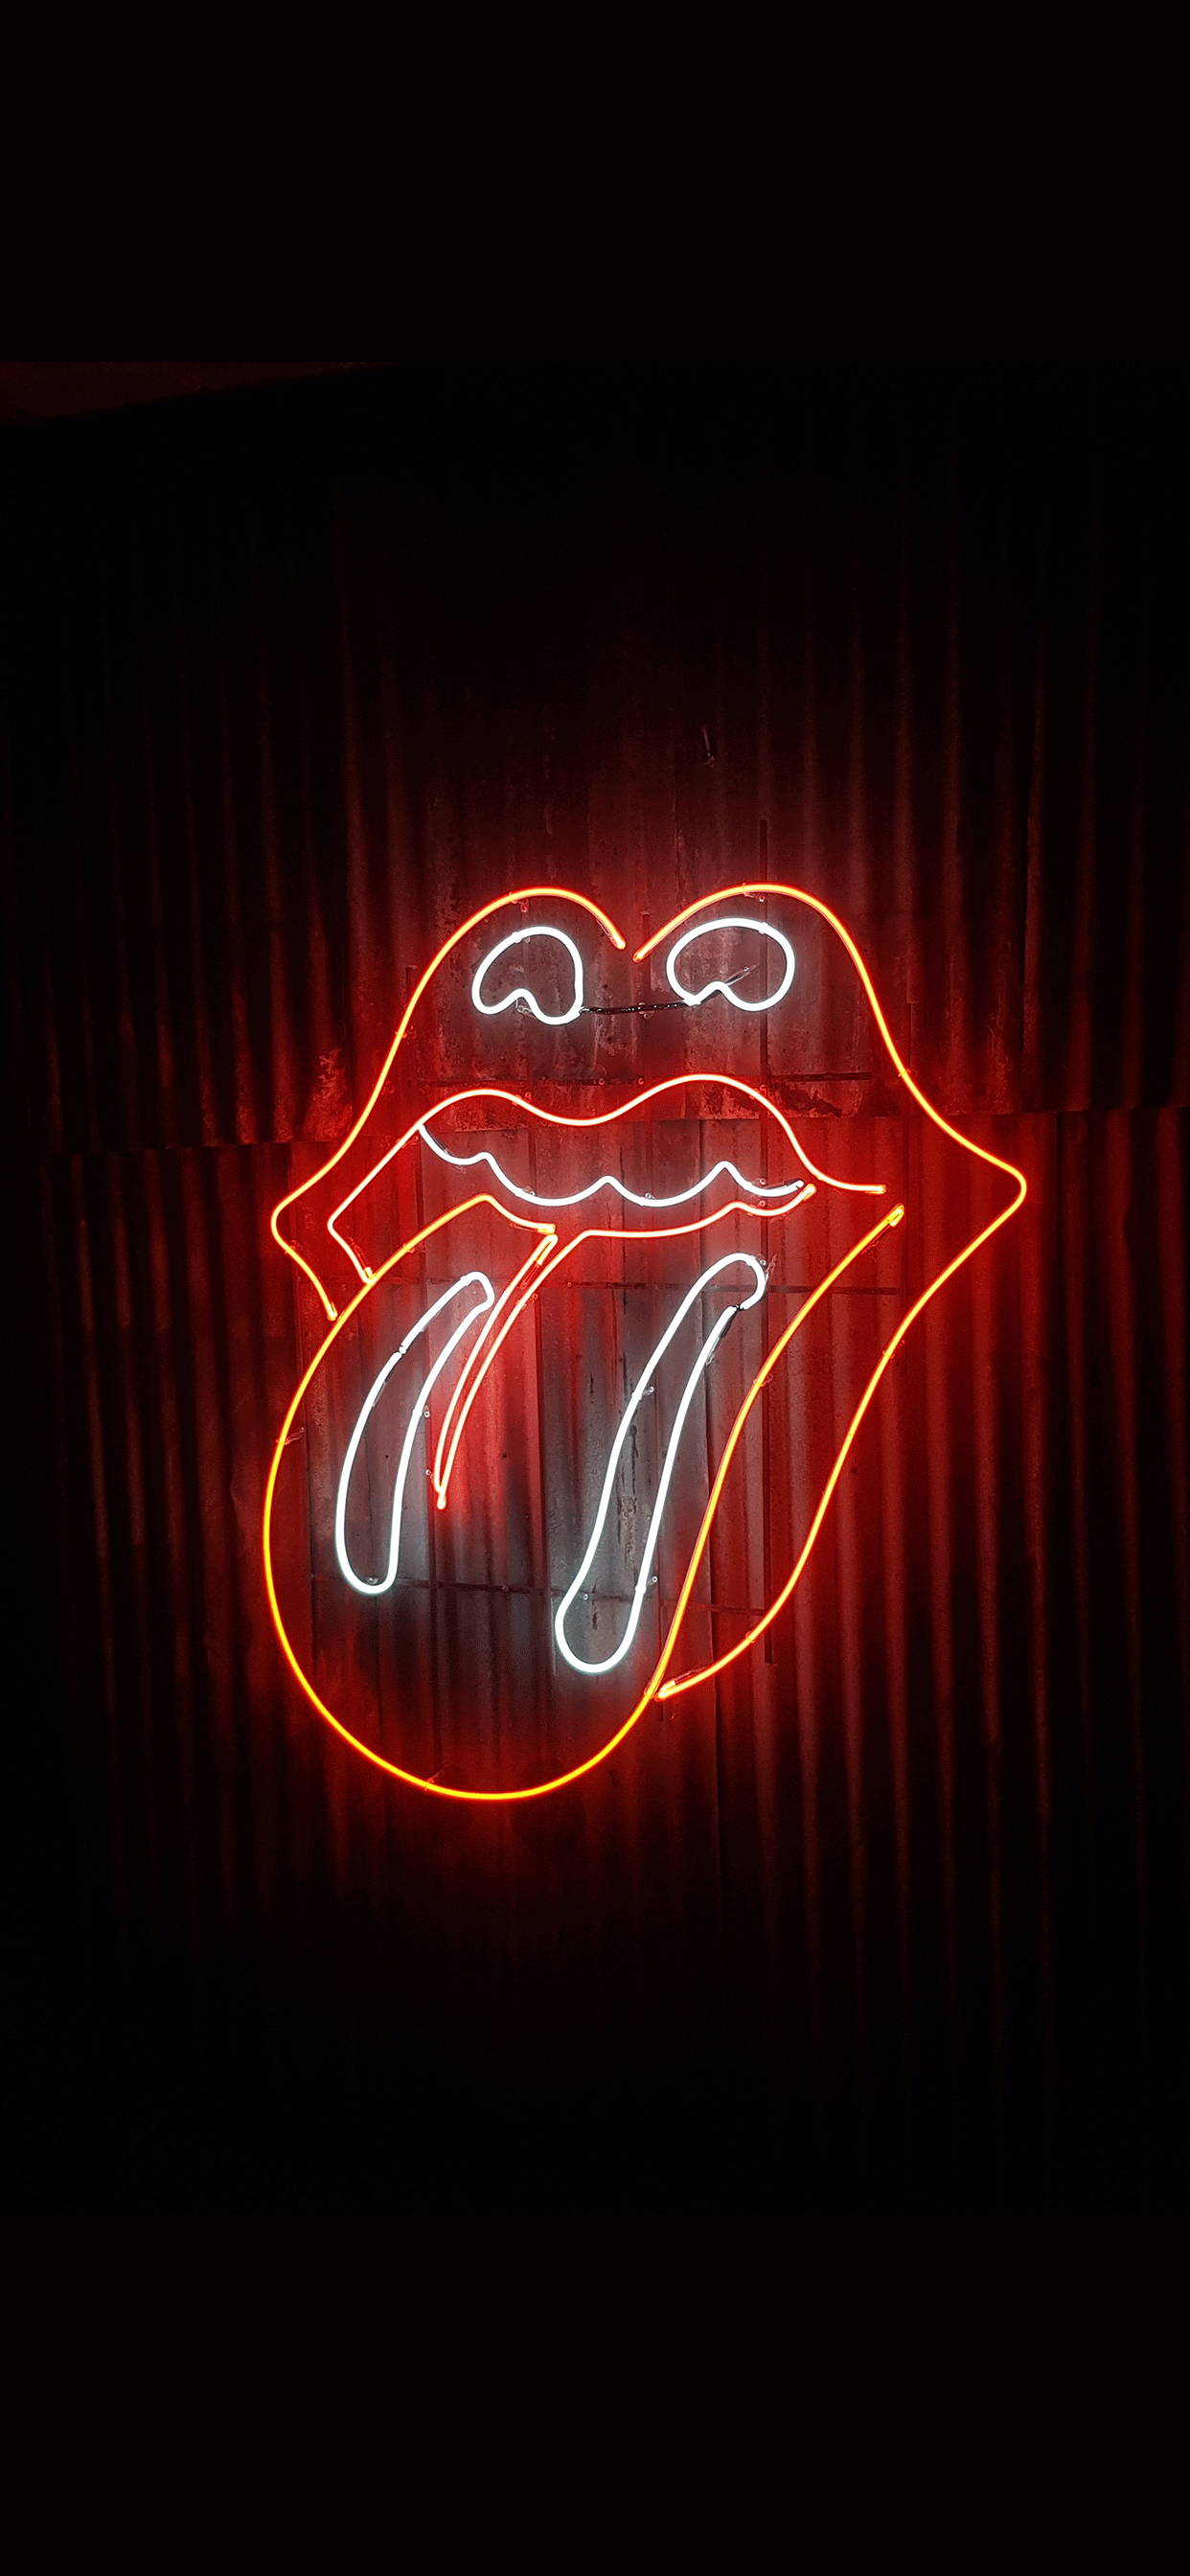 iPhone wallpapers neon mouth Neon sign